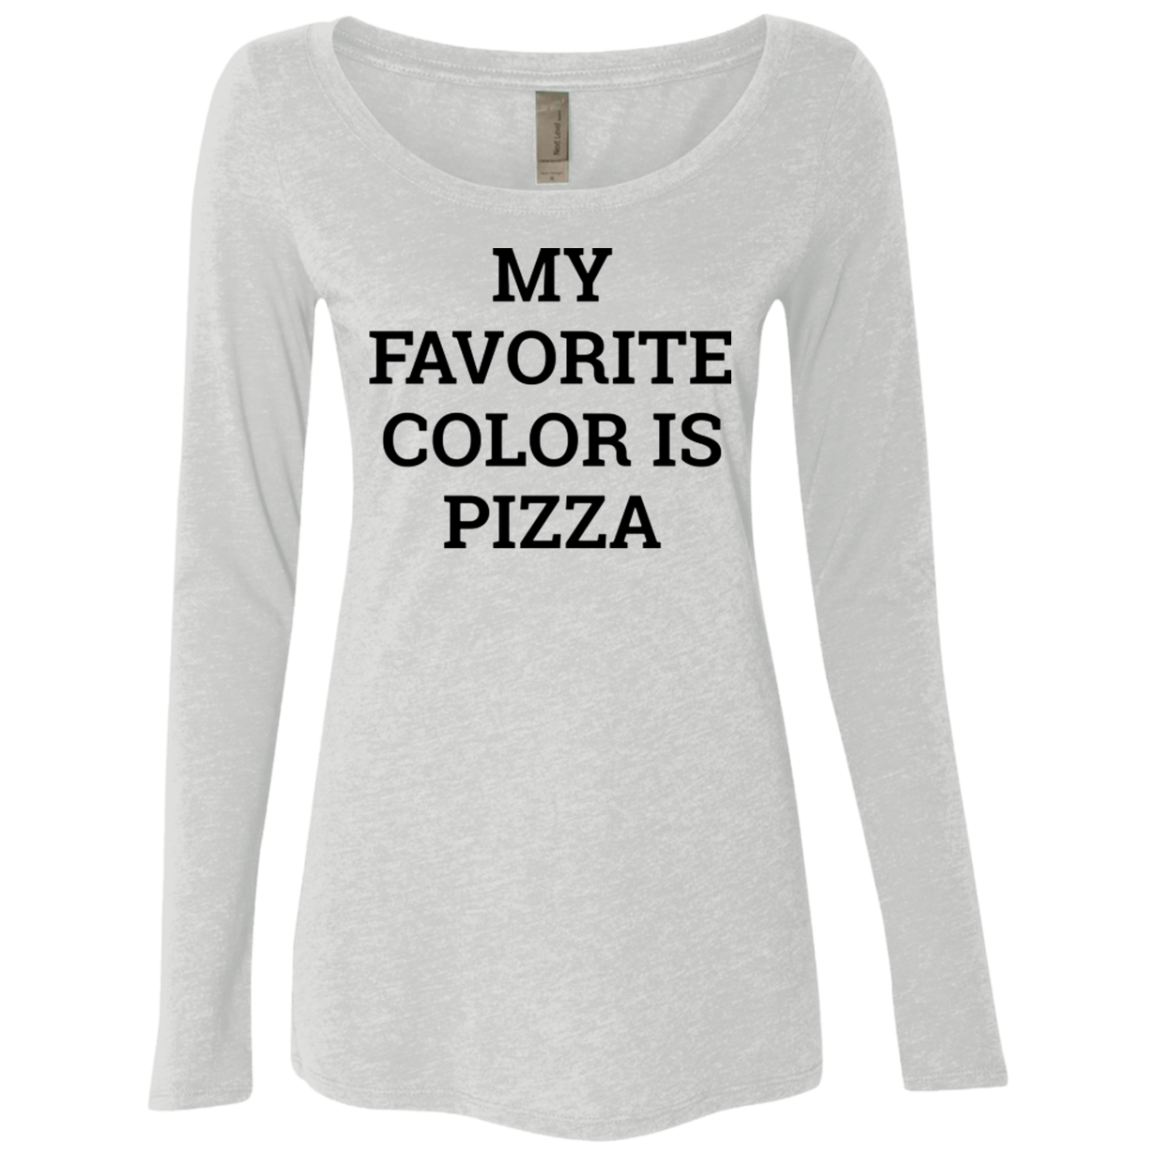 My Favorite Color is Pizza Women's Long Sleeve Tee